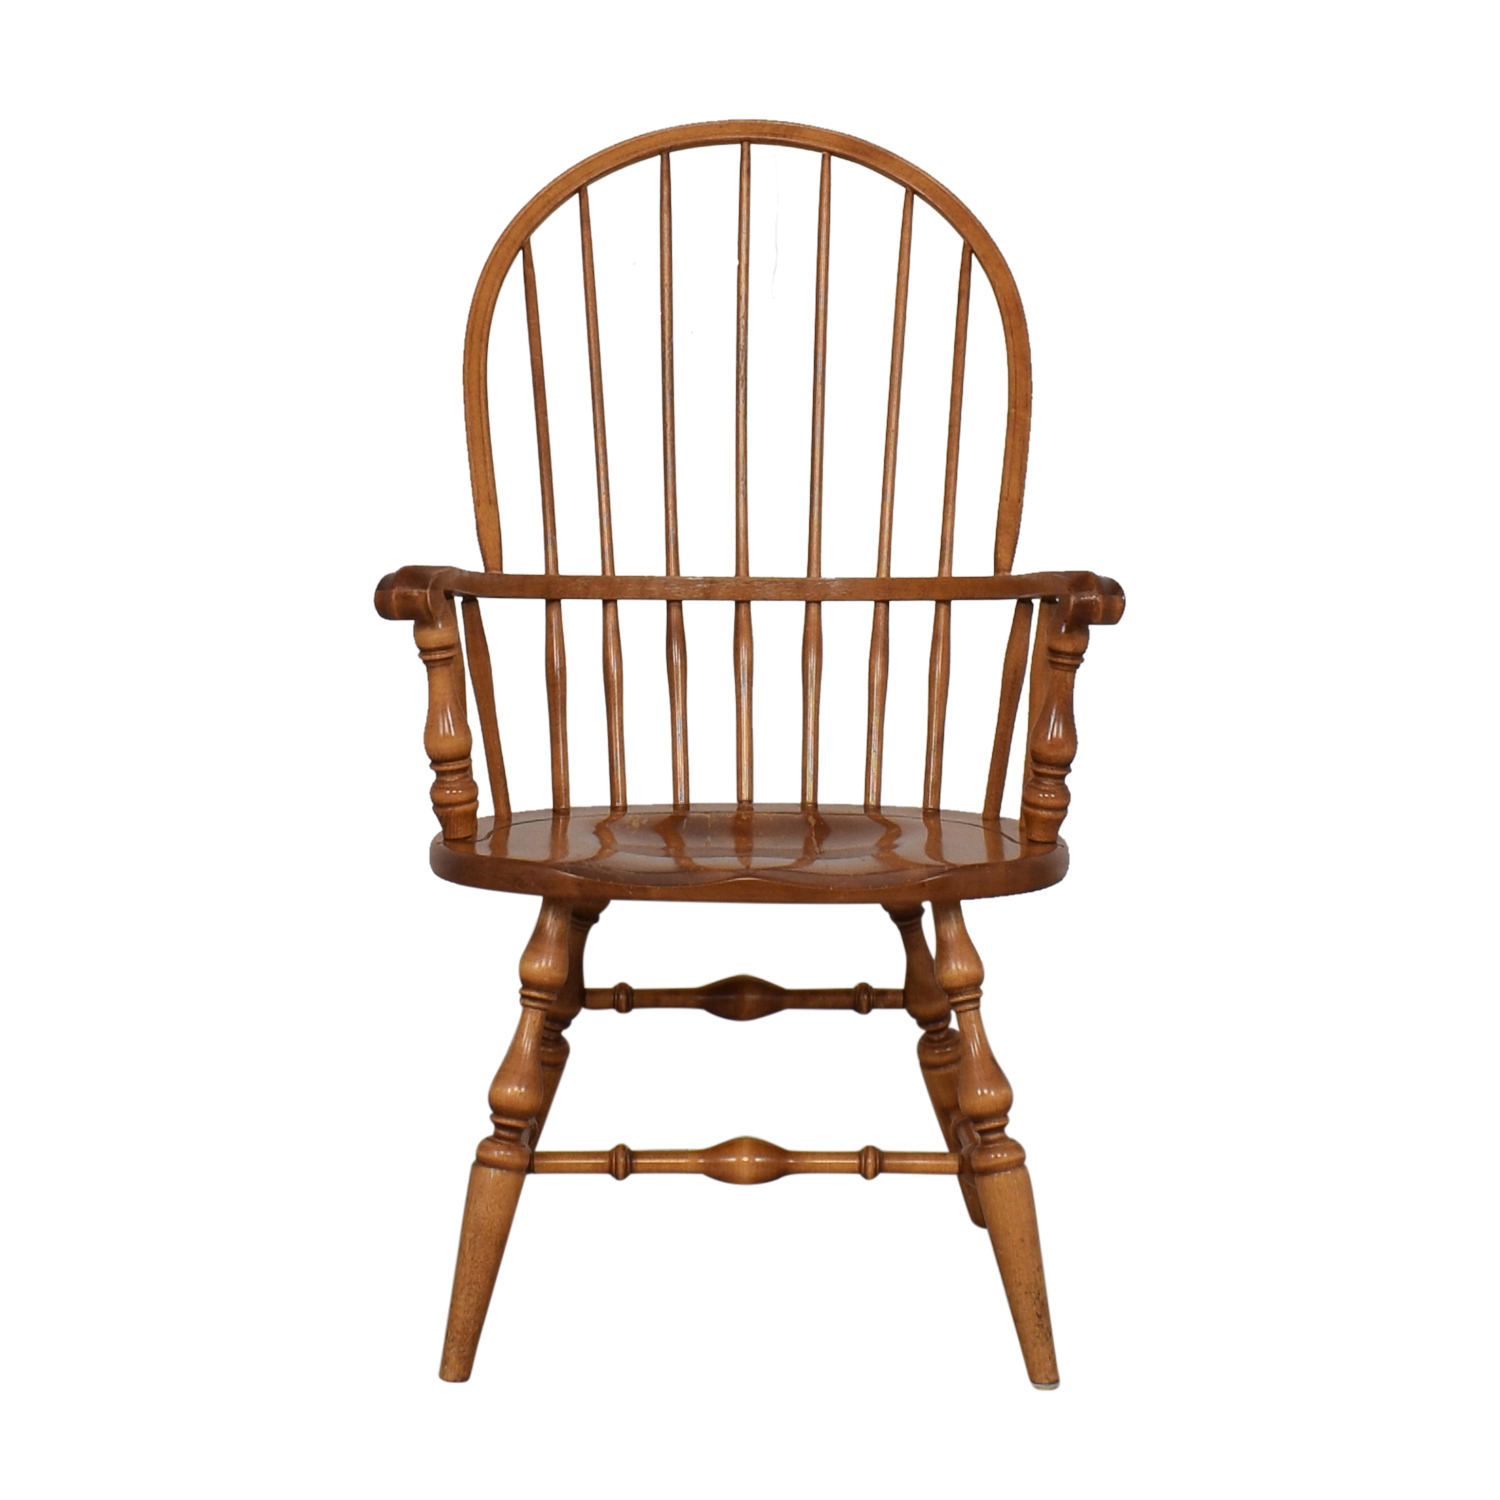 Nichols & Stone Nichols & Stone Windsor Chair on sale